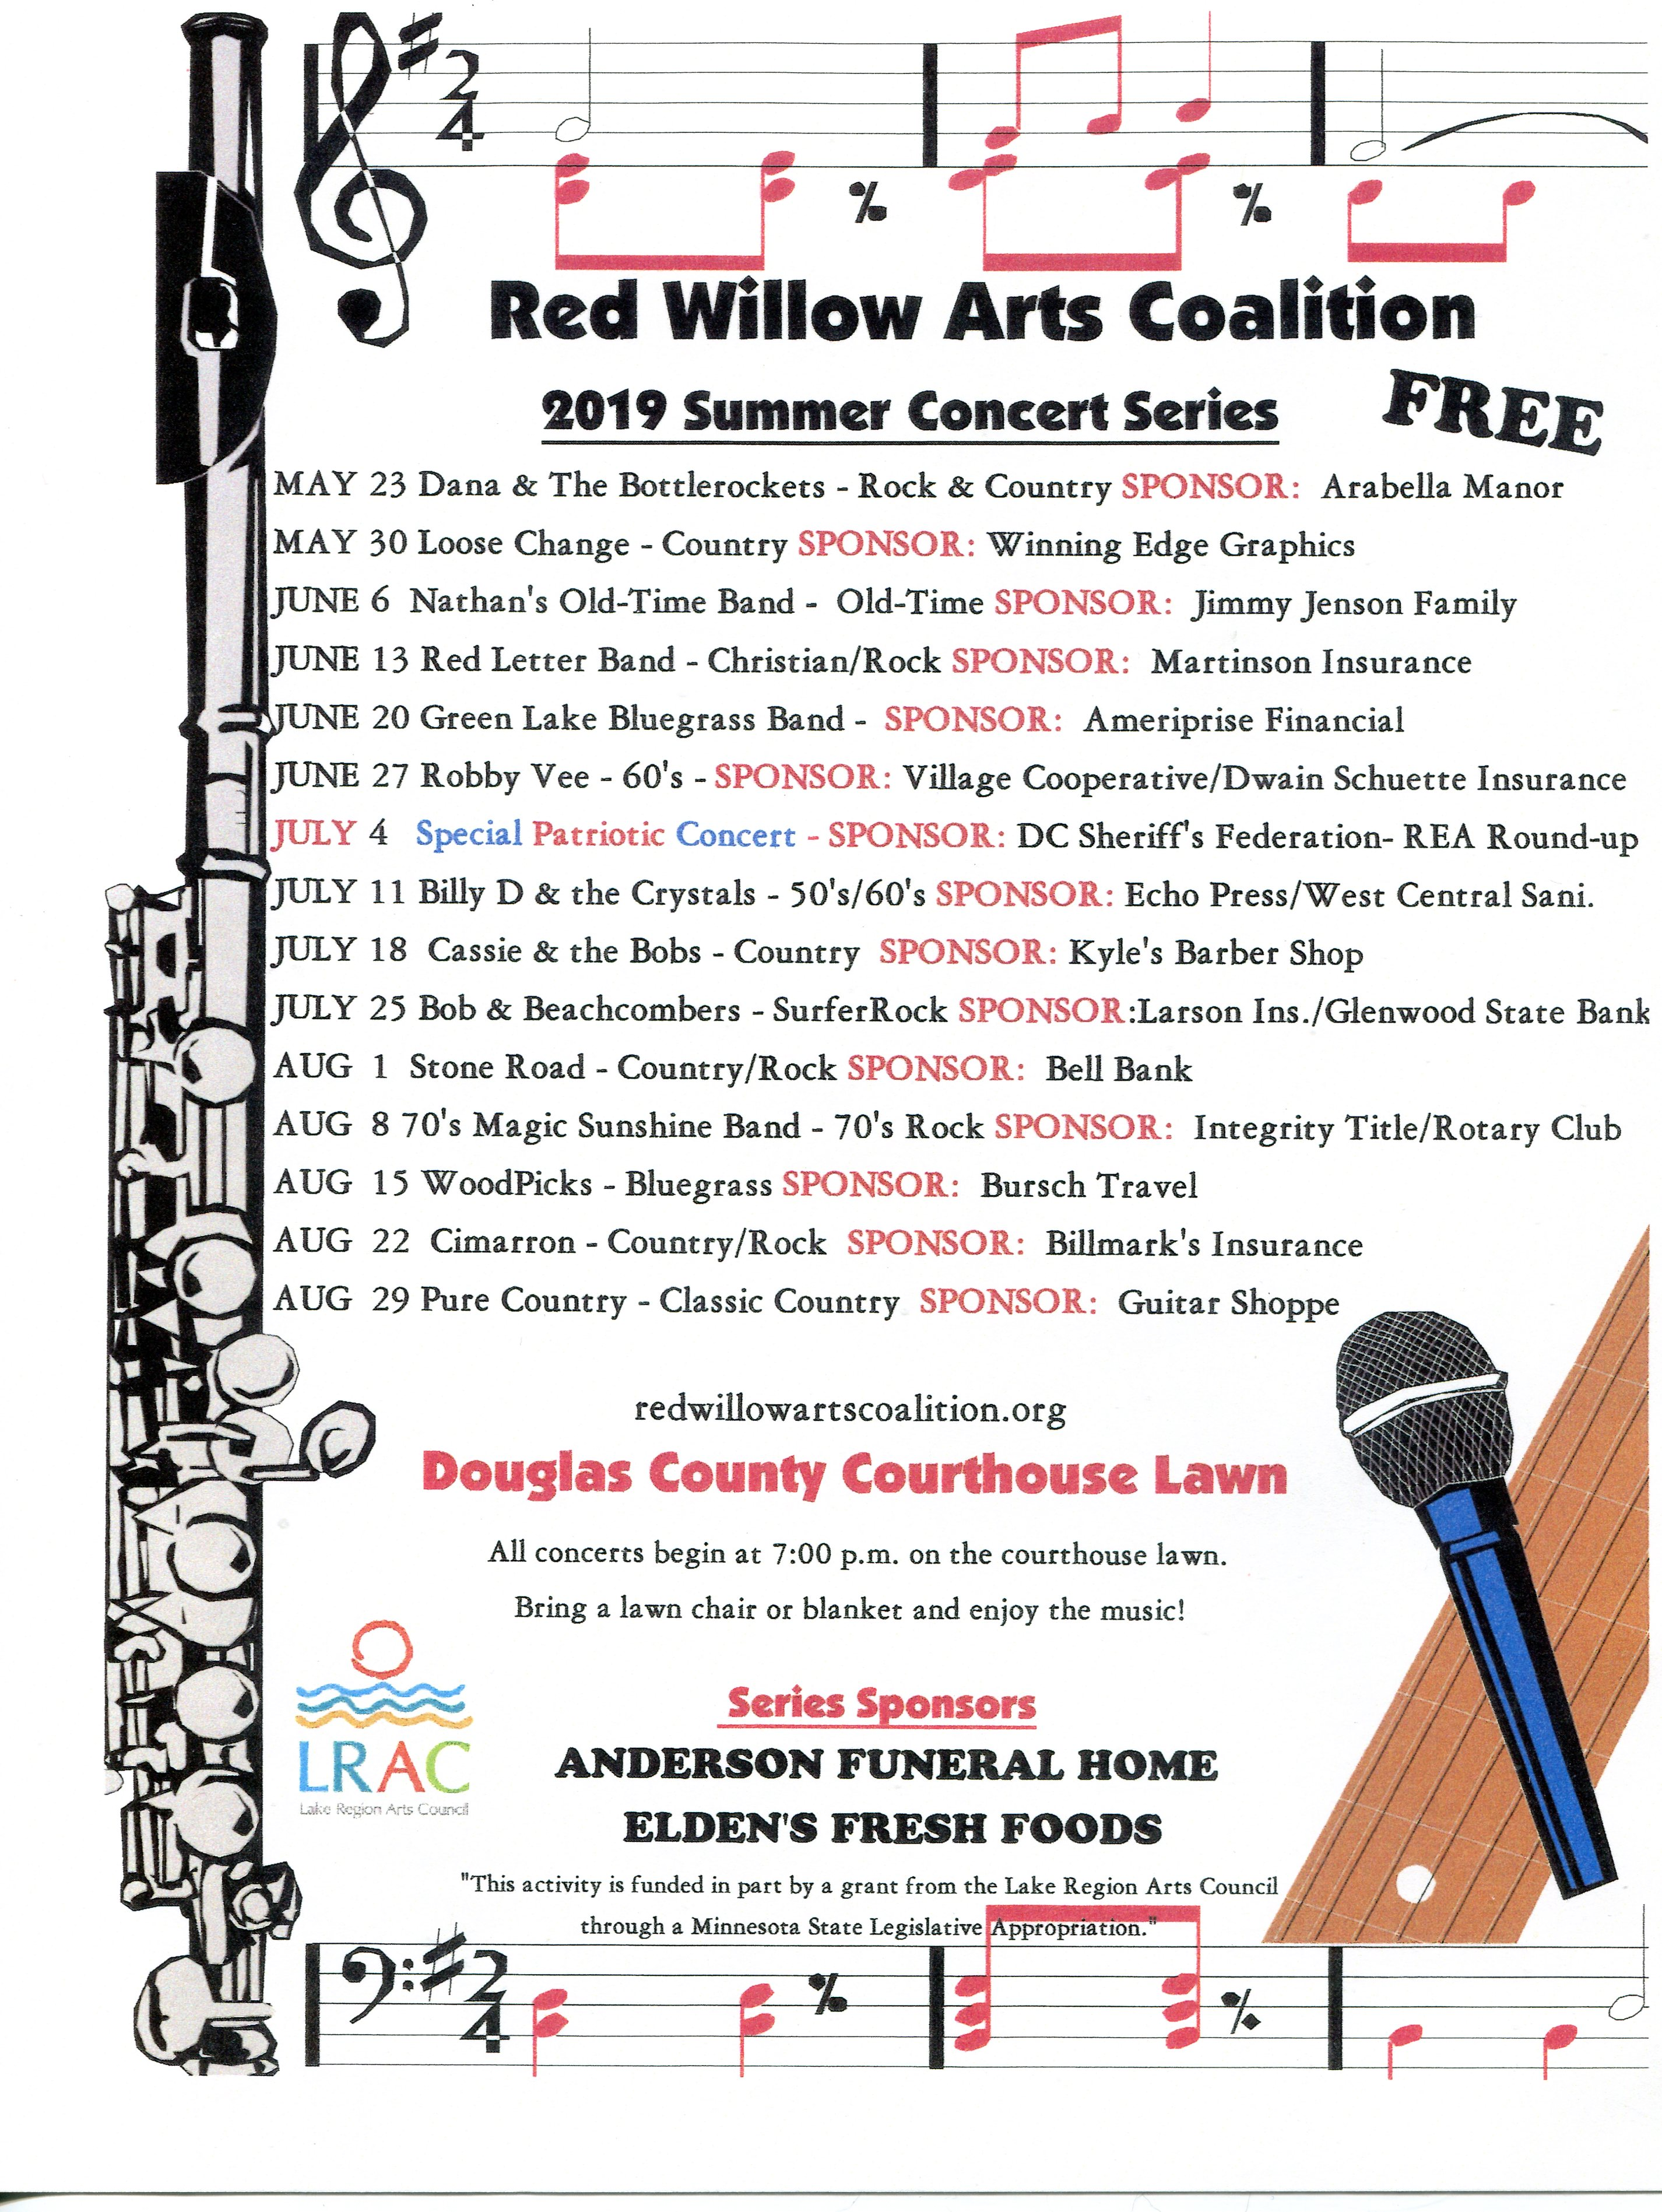 Red Willow Arts Coalition Summer Concert Series